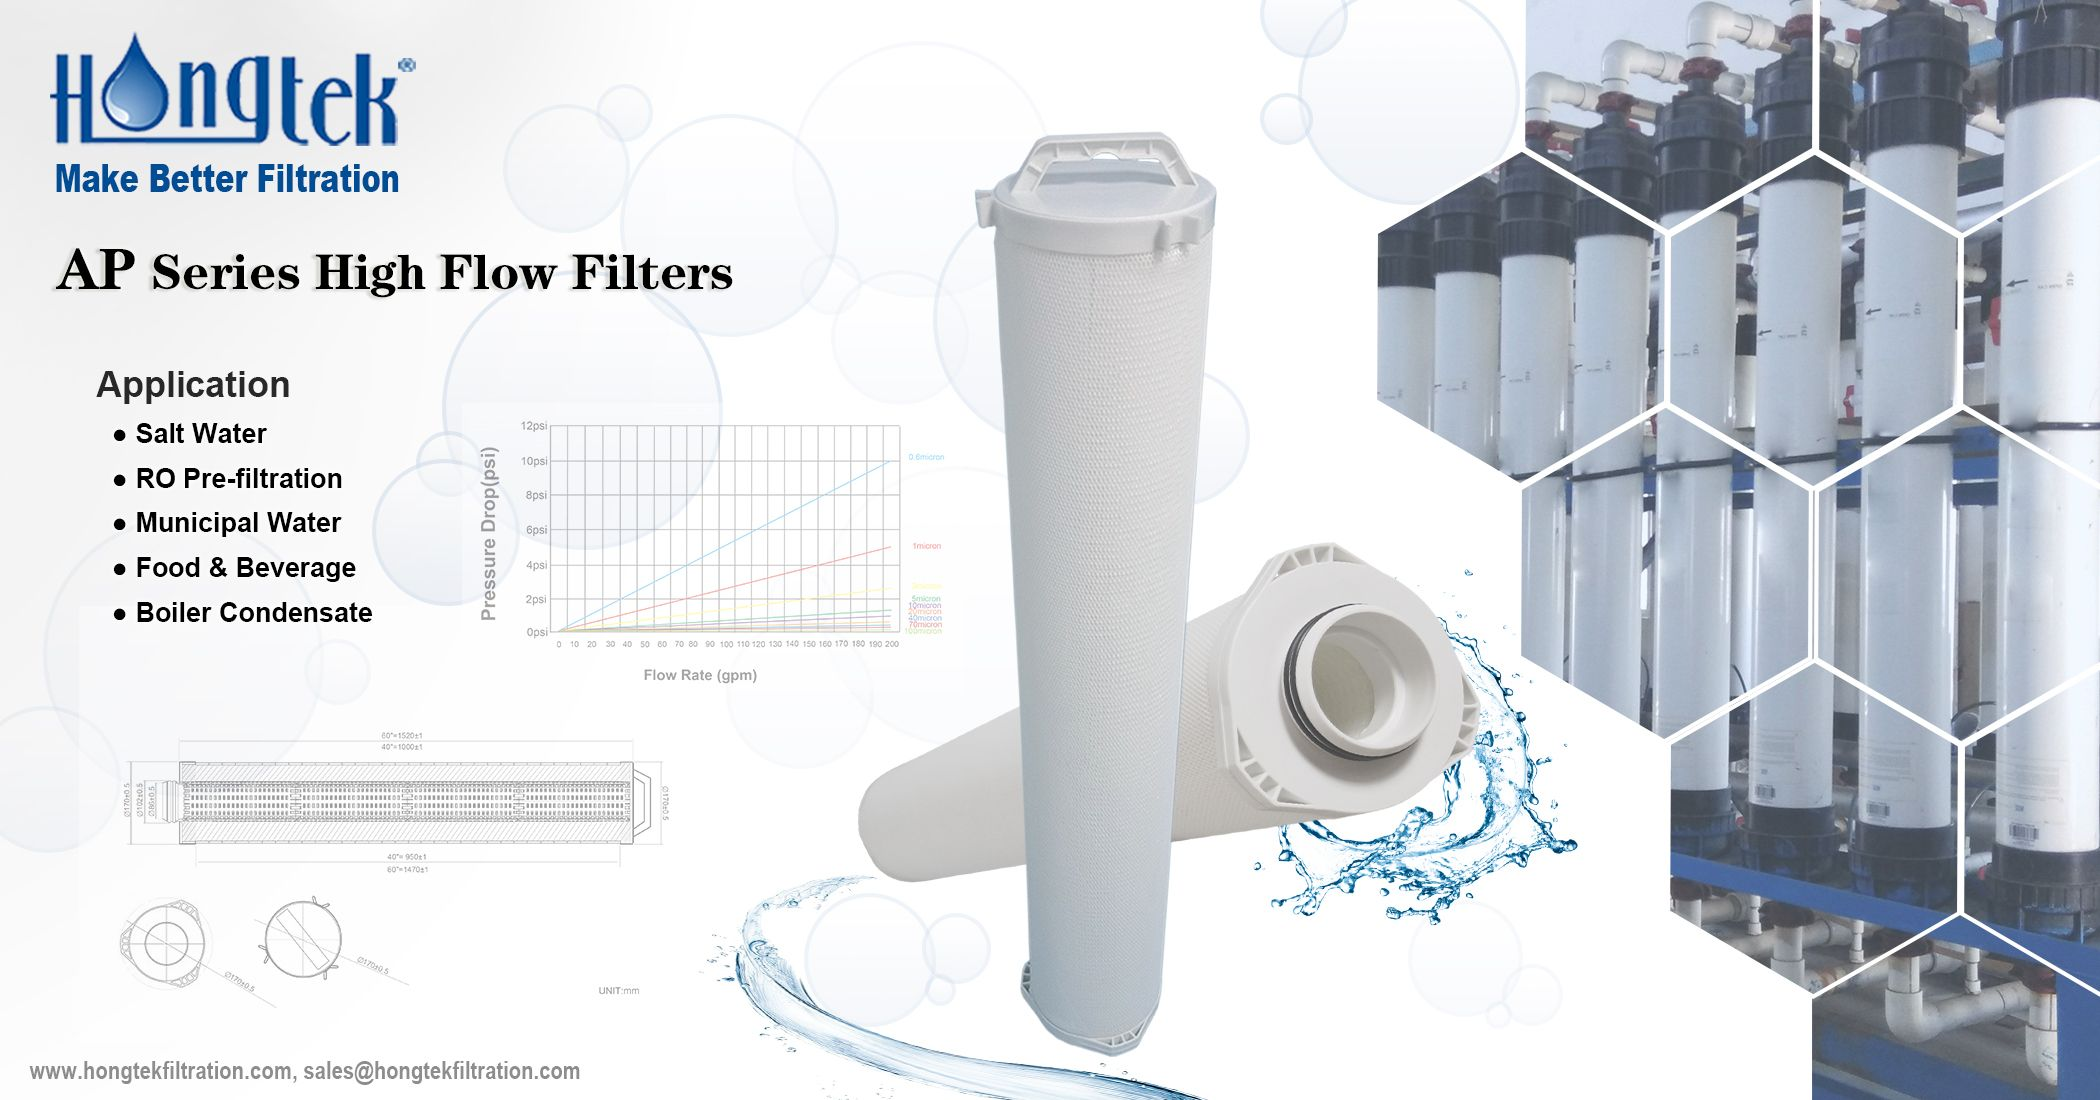 Hongtek Ap Series High Flow Filter Cartridges Are Manufactured With Absolute Rated Pp Media Achieving 99 98 Beta 5000 Efficiency At Their Stated Micron Size